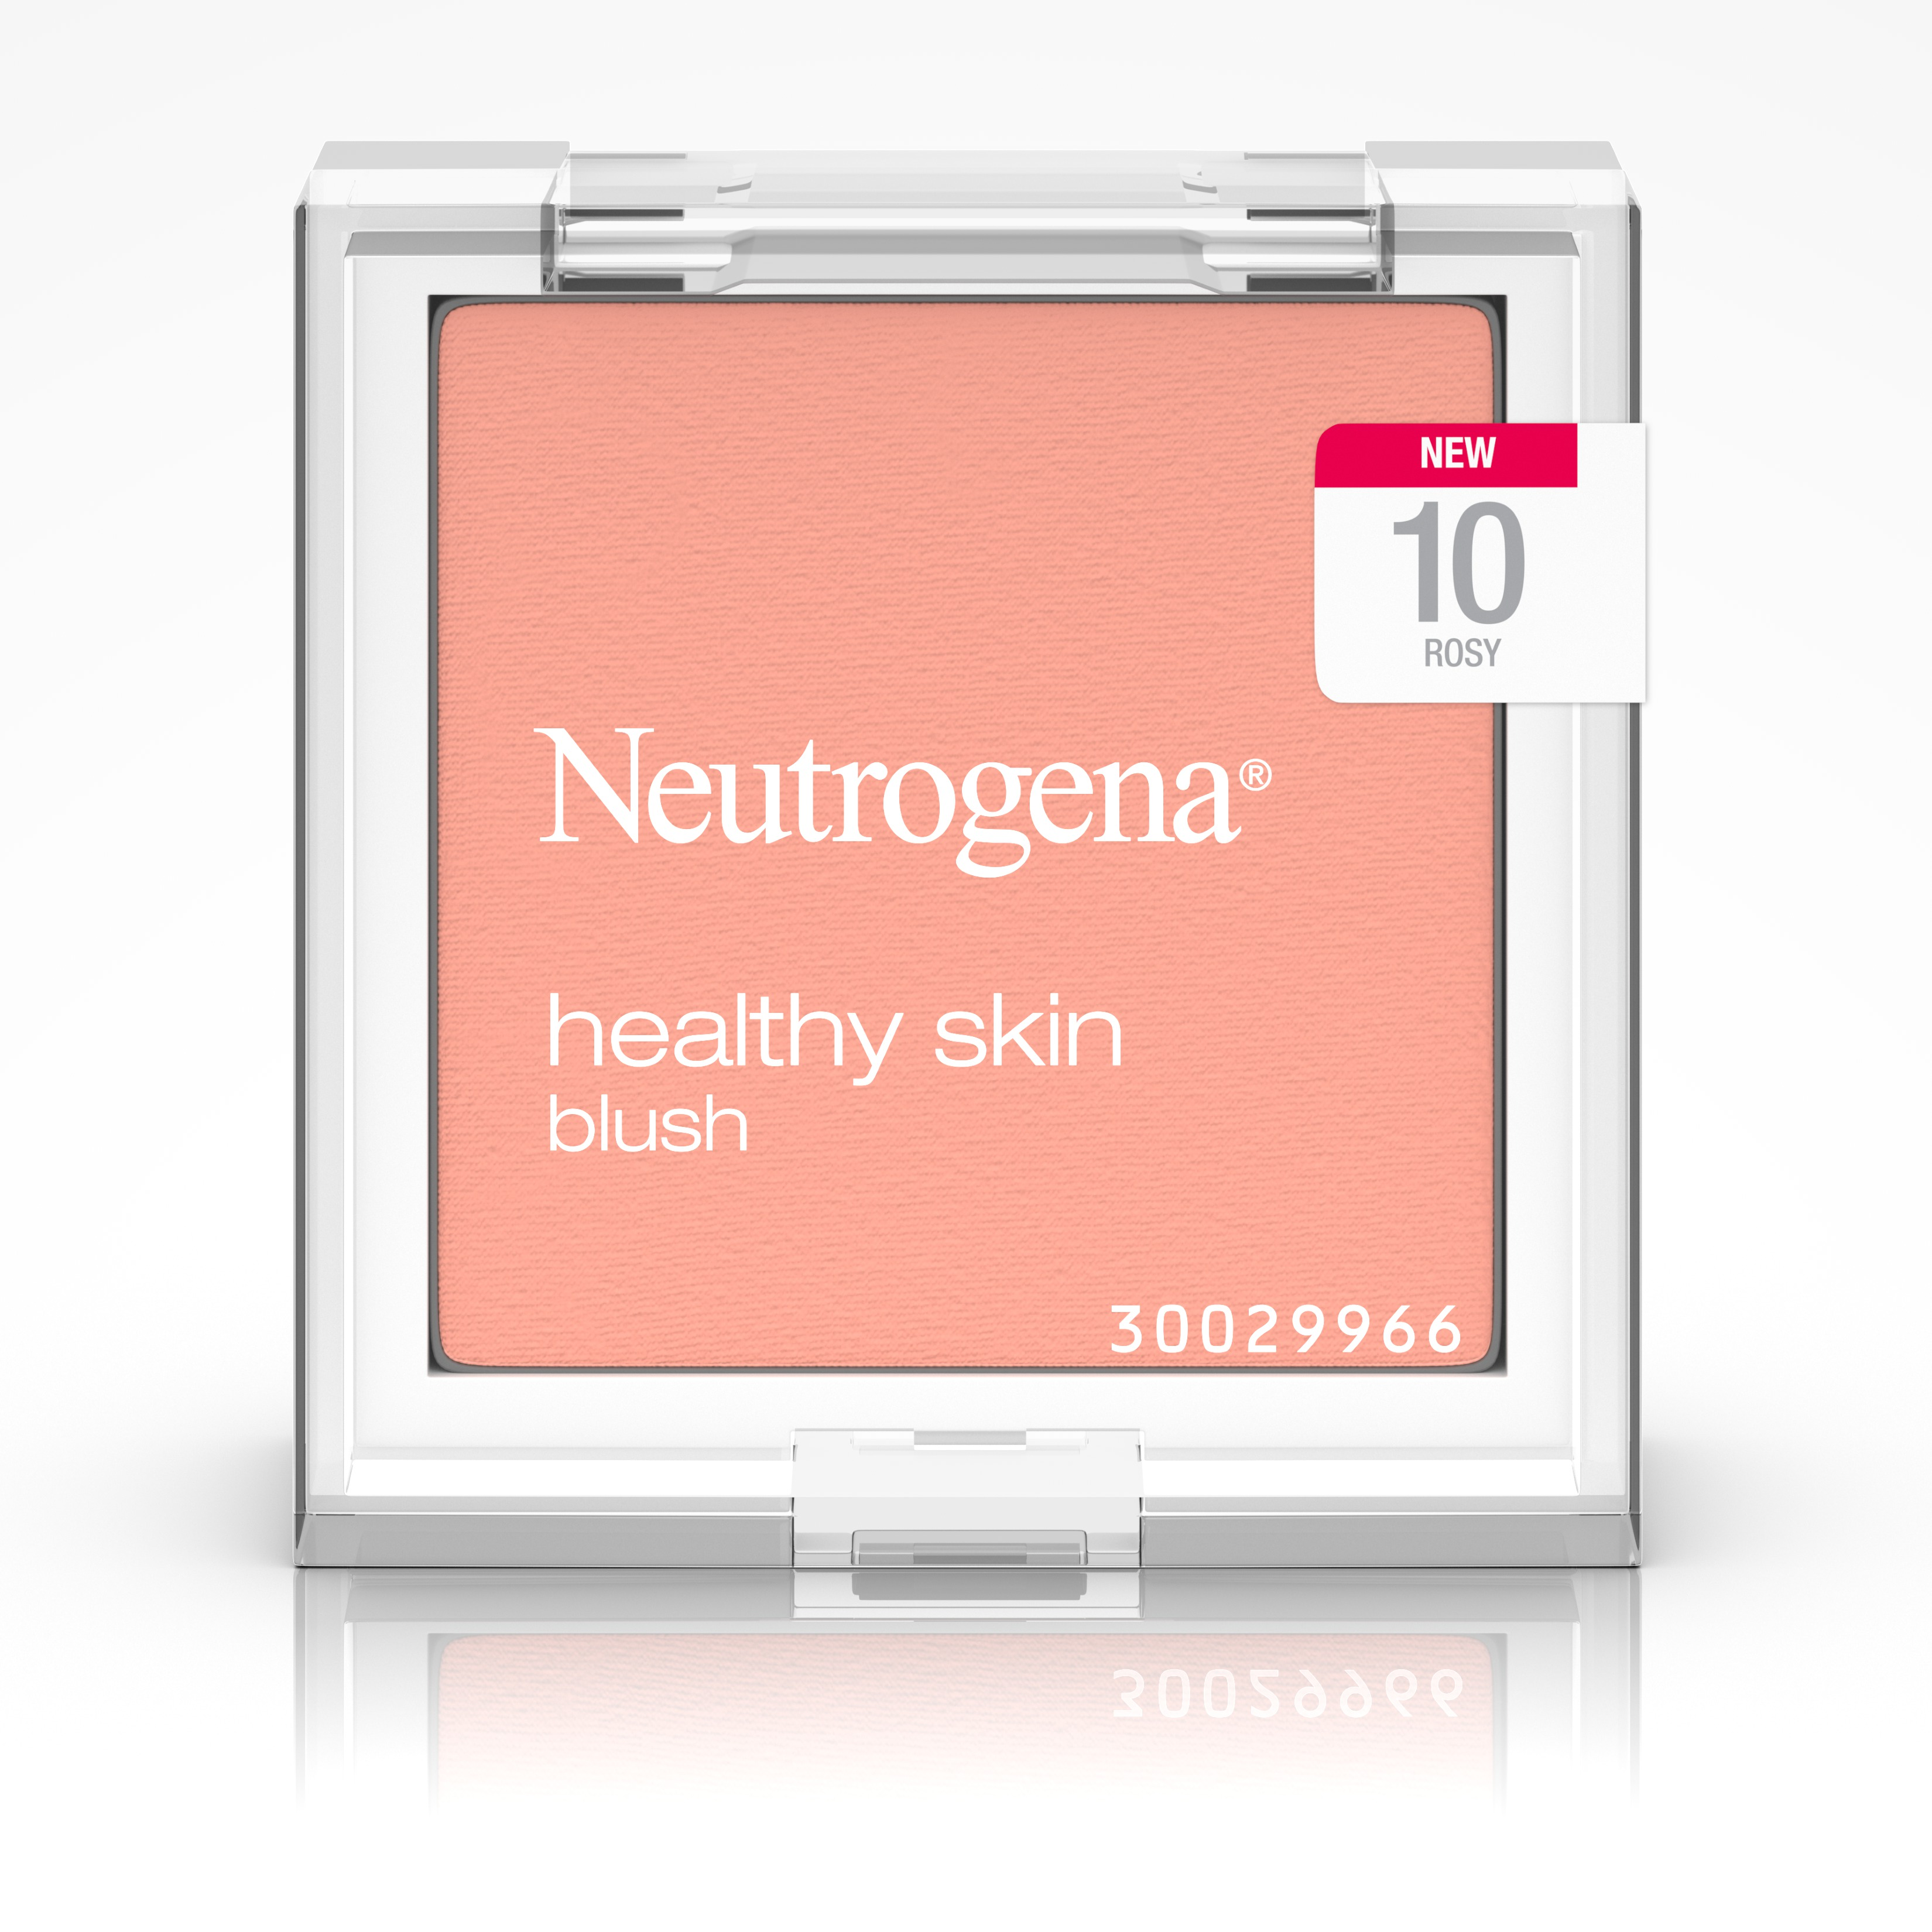 Neutrogena Healthy Skin Blush, 10 Rosy, .19 Oz